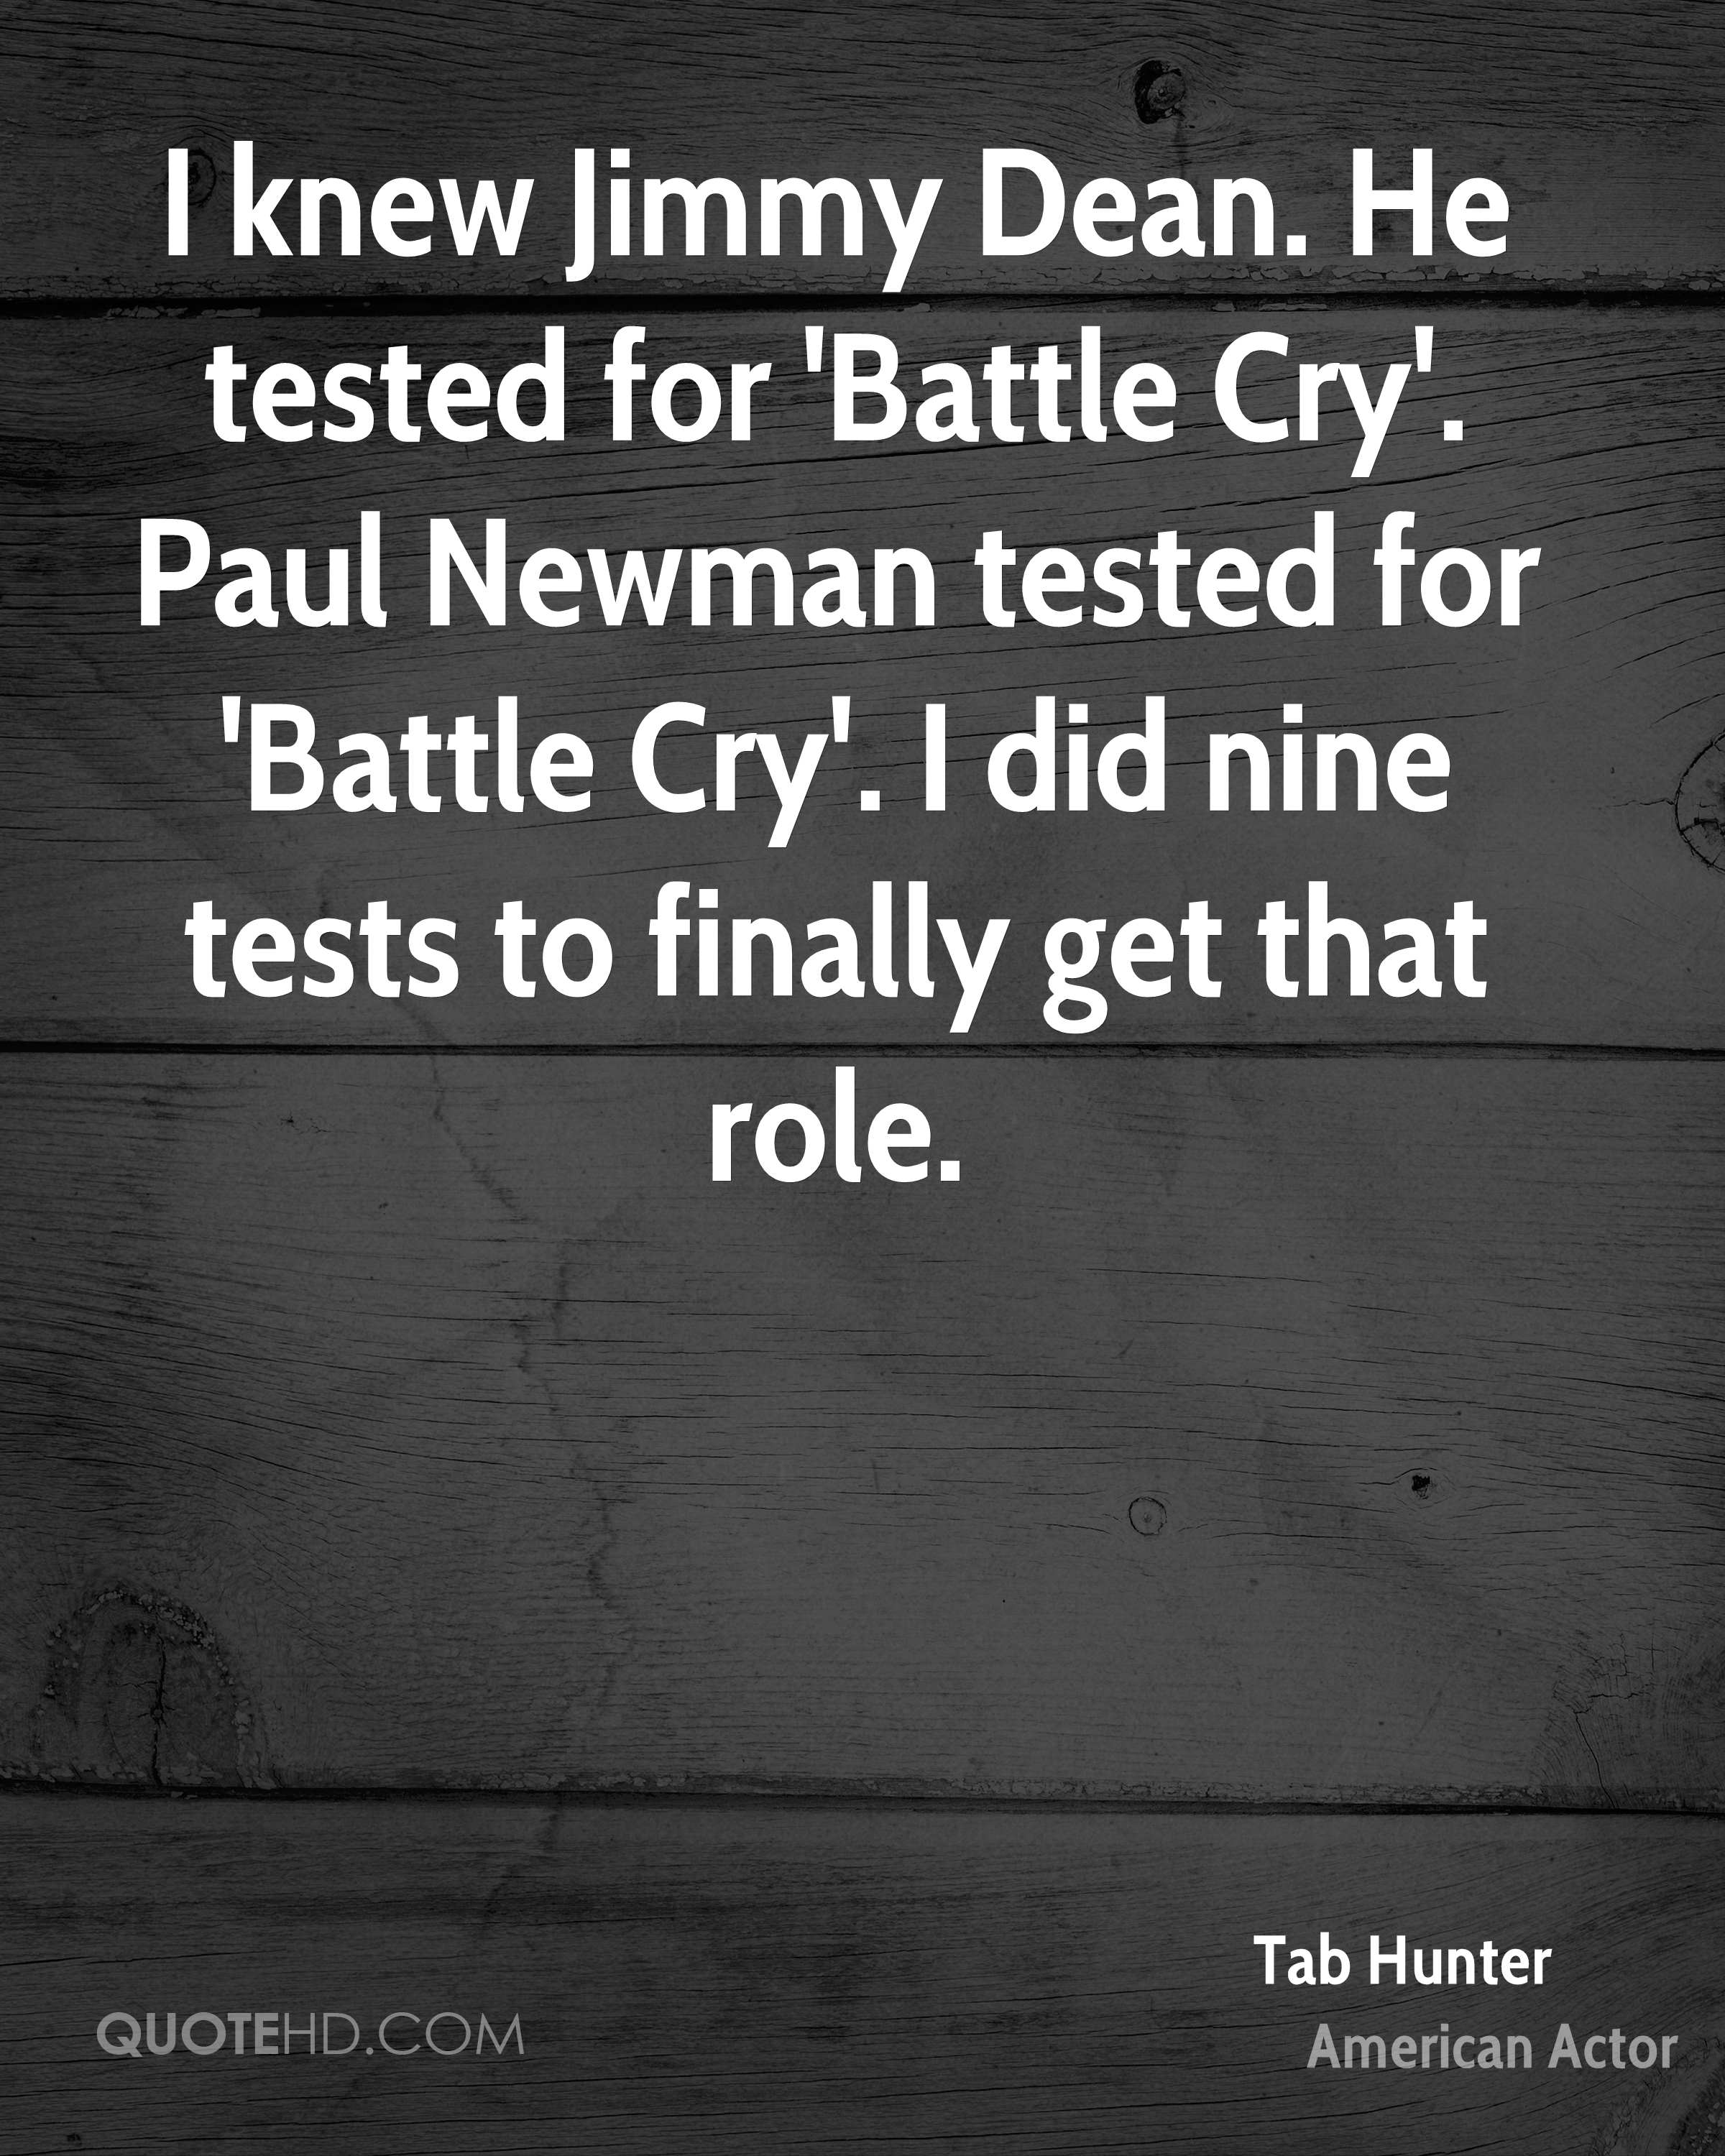 I knew Jimmy Dean. He tested for 'Battle Cry'. Paul Newman tested for 'Battle Cry'. I did nine tests to finally get that role.